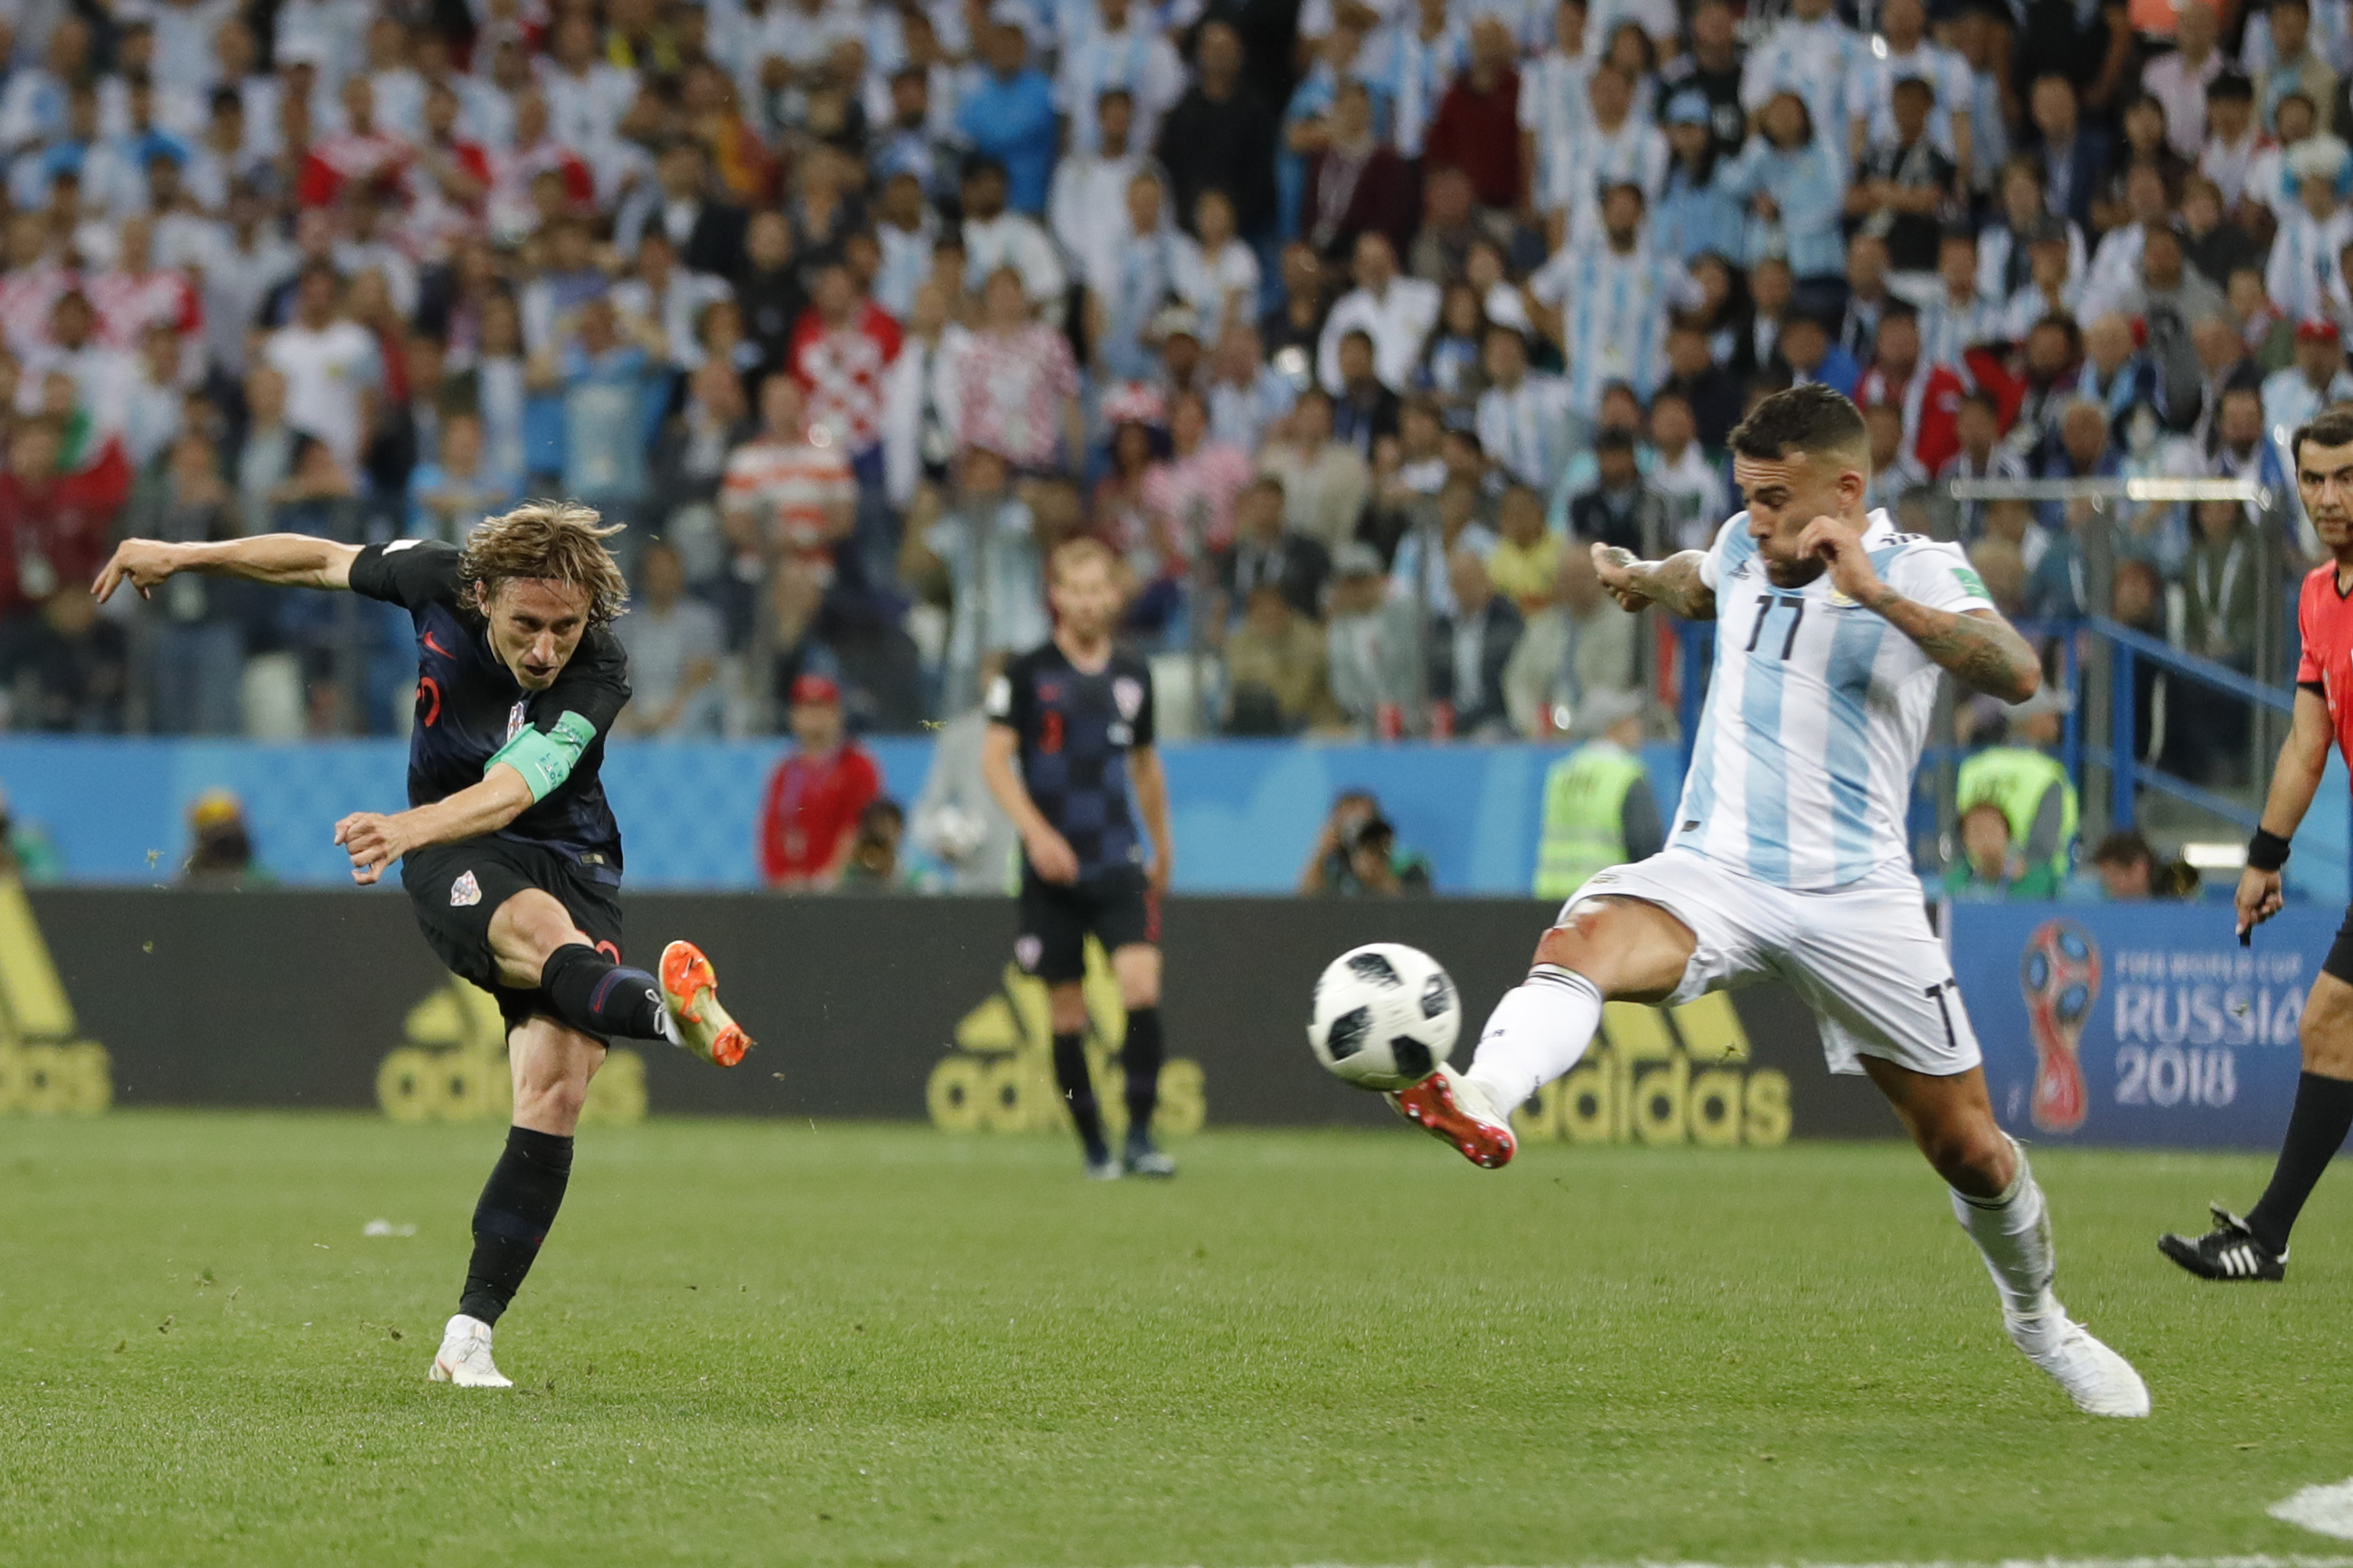 "<div class=""meta image-caption""><div class=""origin-logo origin-image none""><span>none</span></div><span class=""caption-text"">Croatia's Luka Modric, left, shoots the ball to score his side's second goal during the group D match between Argentina and Croatia in Nizhny Novgorod Stadium on June 21. (Ricardo Mazalan/AP Photo)</span></div>"